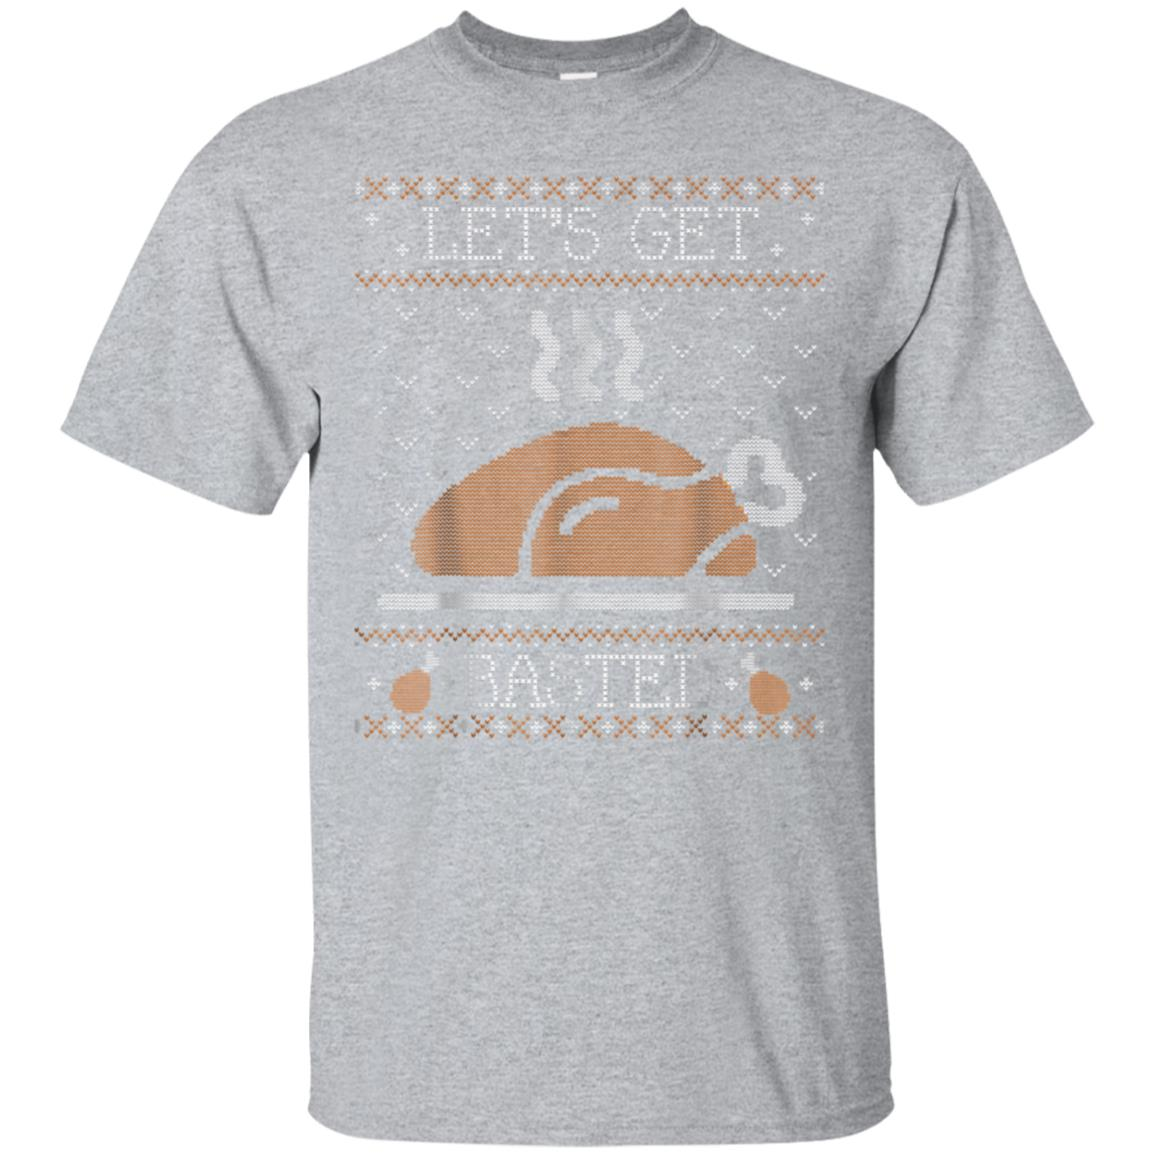 Funny Ugly Thanksgiving Sweater Shirt Lets Get Basted Tshirt 99promocode